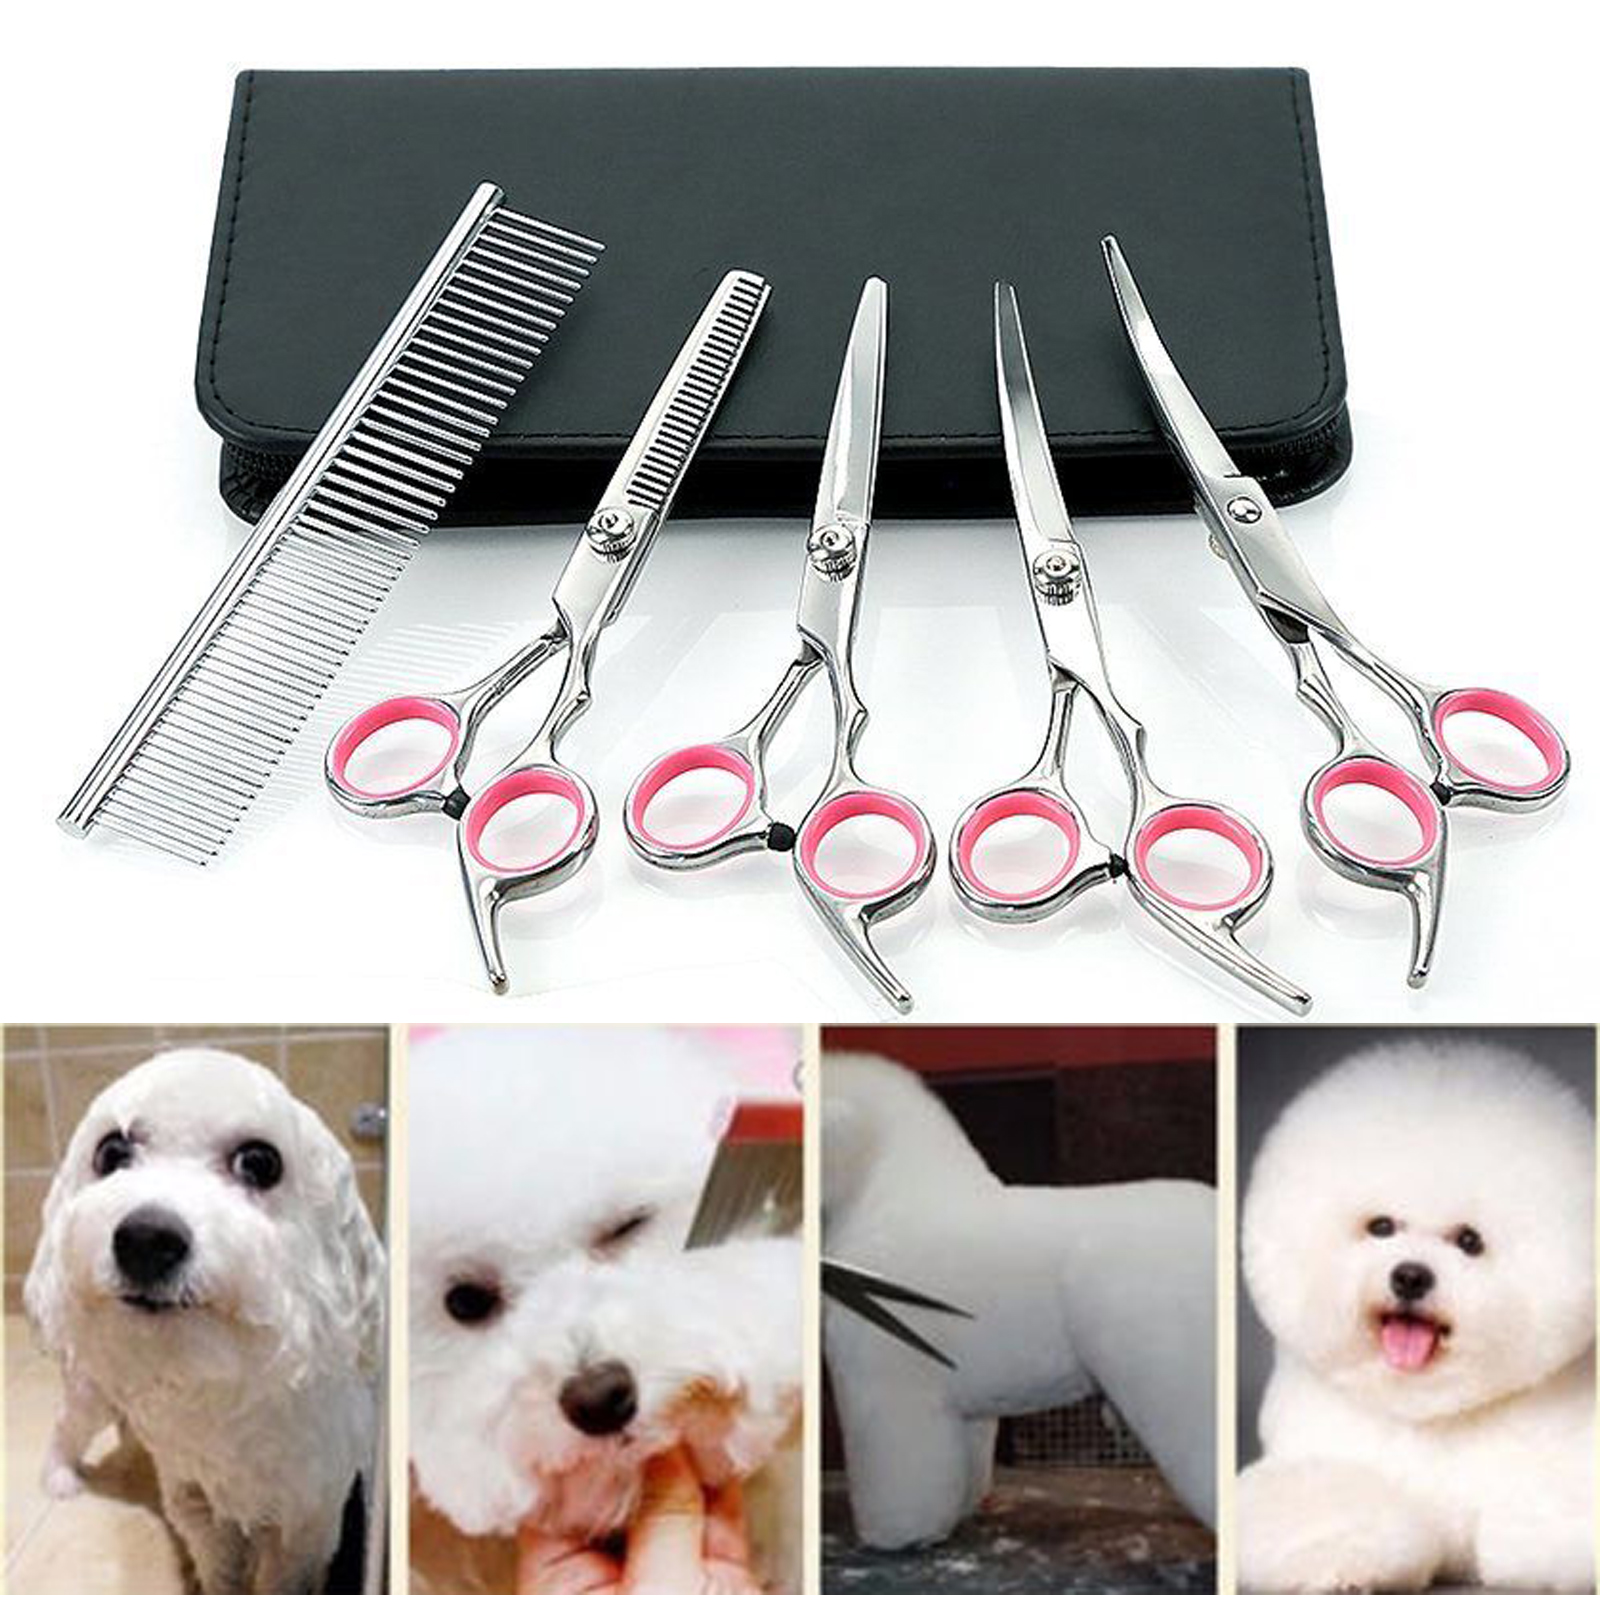 6 Professional Hair Cutting Scissors Pet Dog Grooming Kit Curved